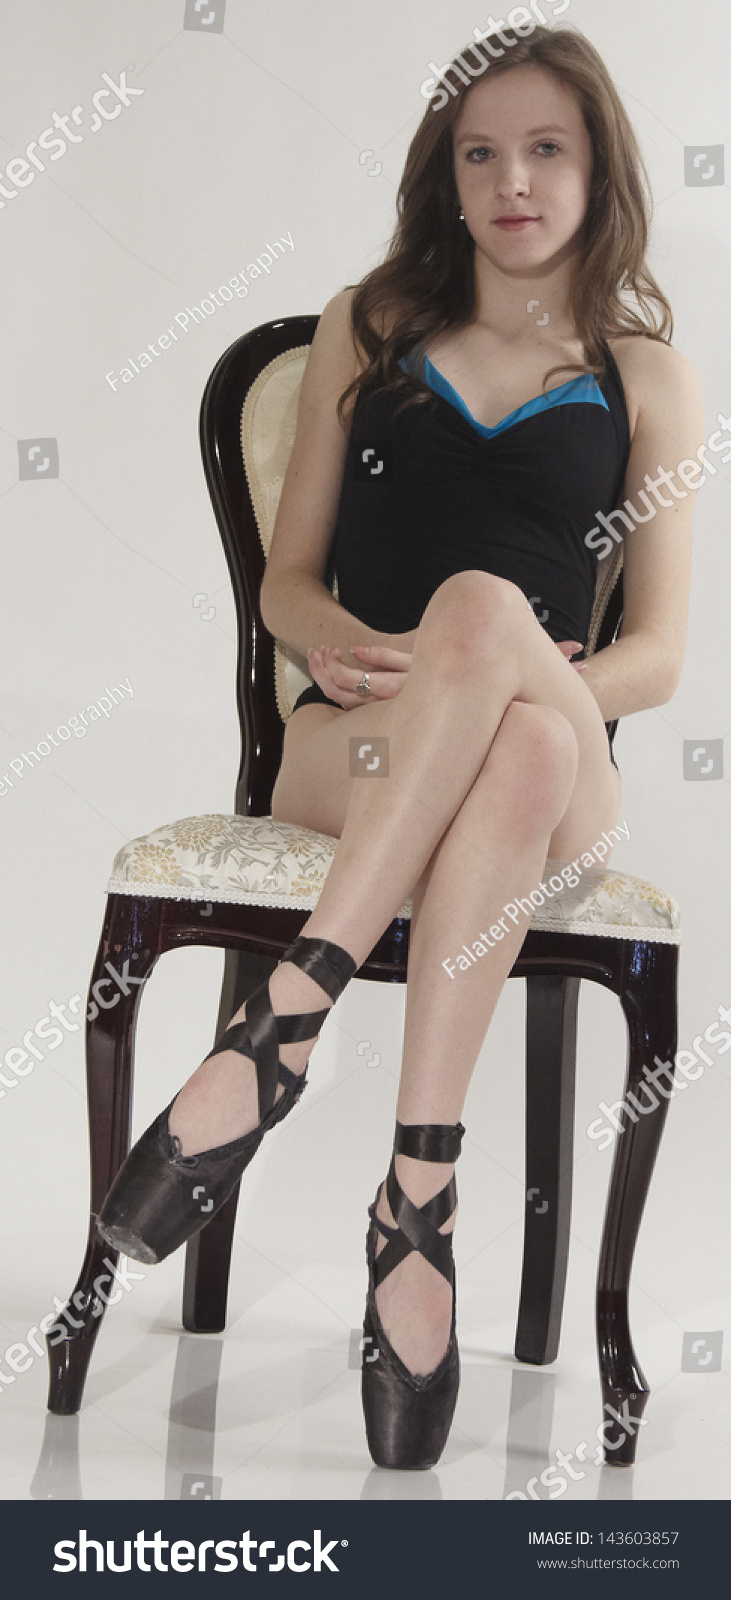 Teen Ballerina Sitting In A Chair With Her Legs Crossed In A Ballet Leotard And Pointe